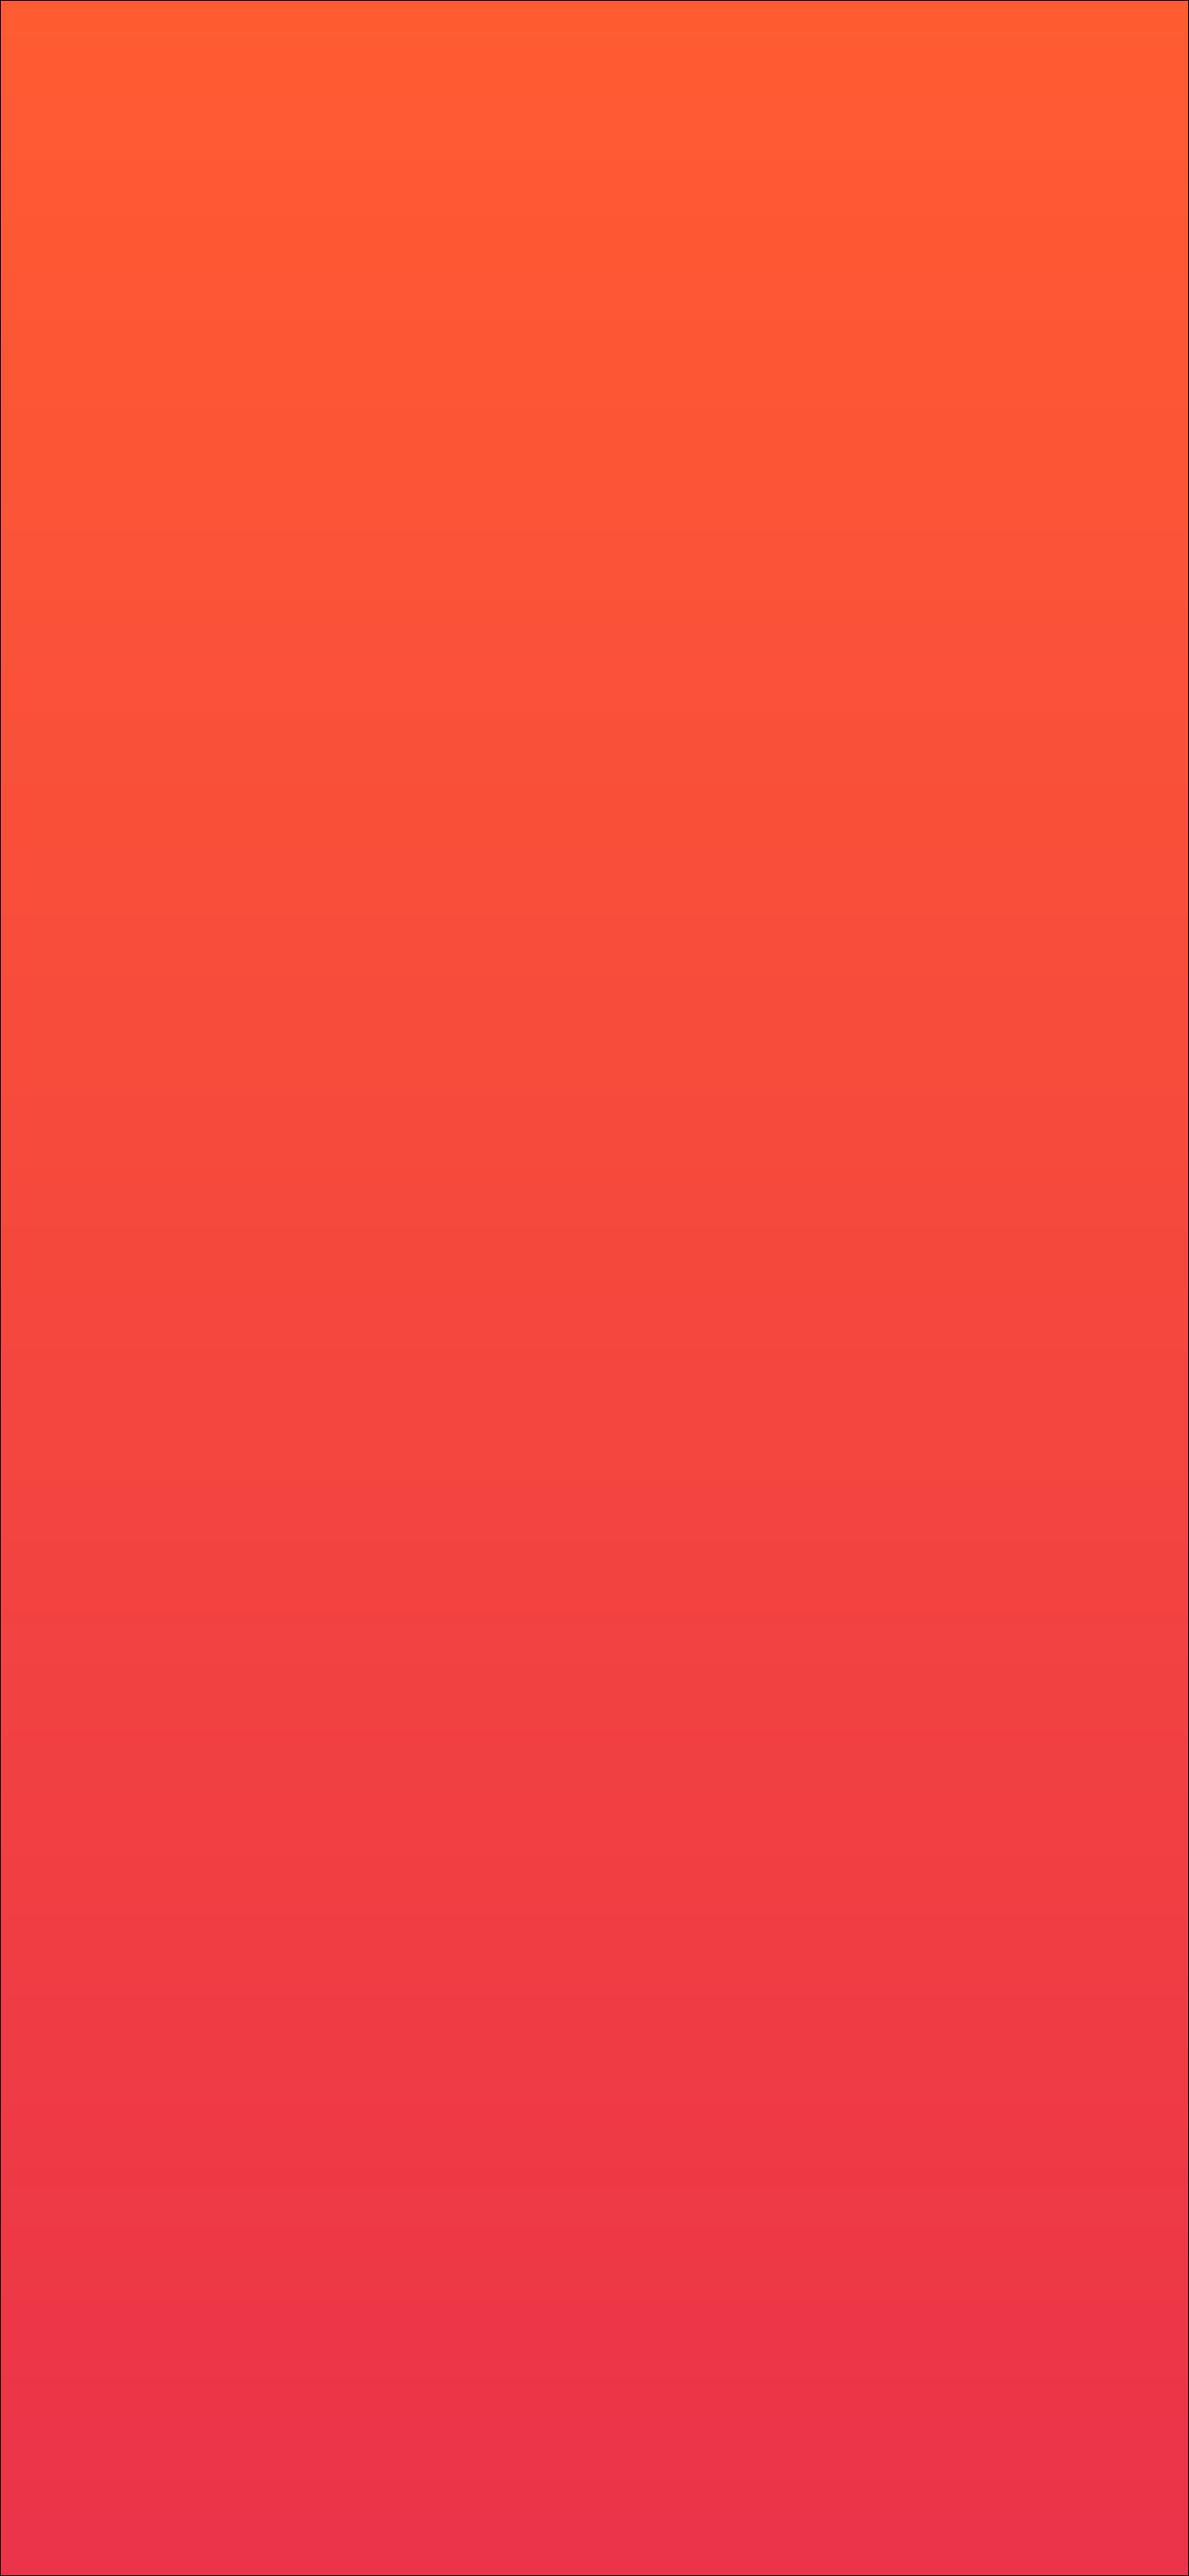 50 Best Gradient Wallpapers For Iphone Android 4k Resolution